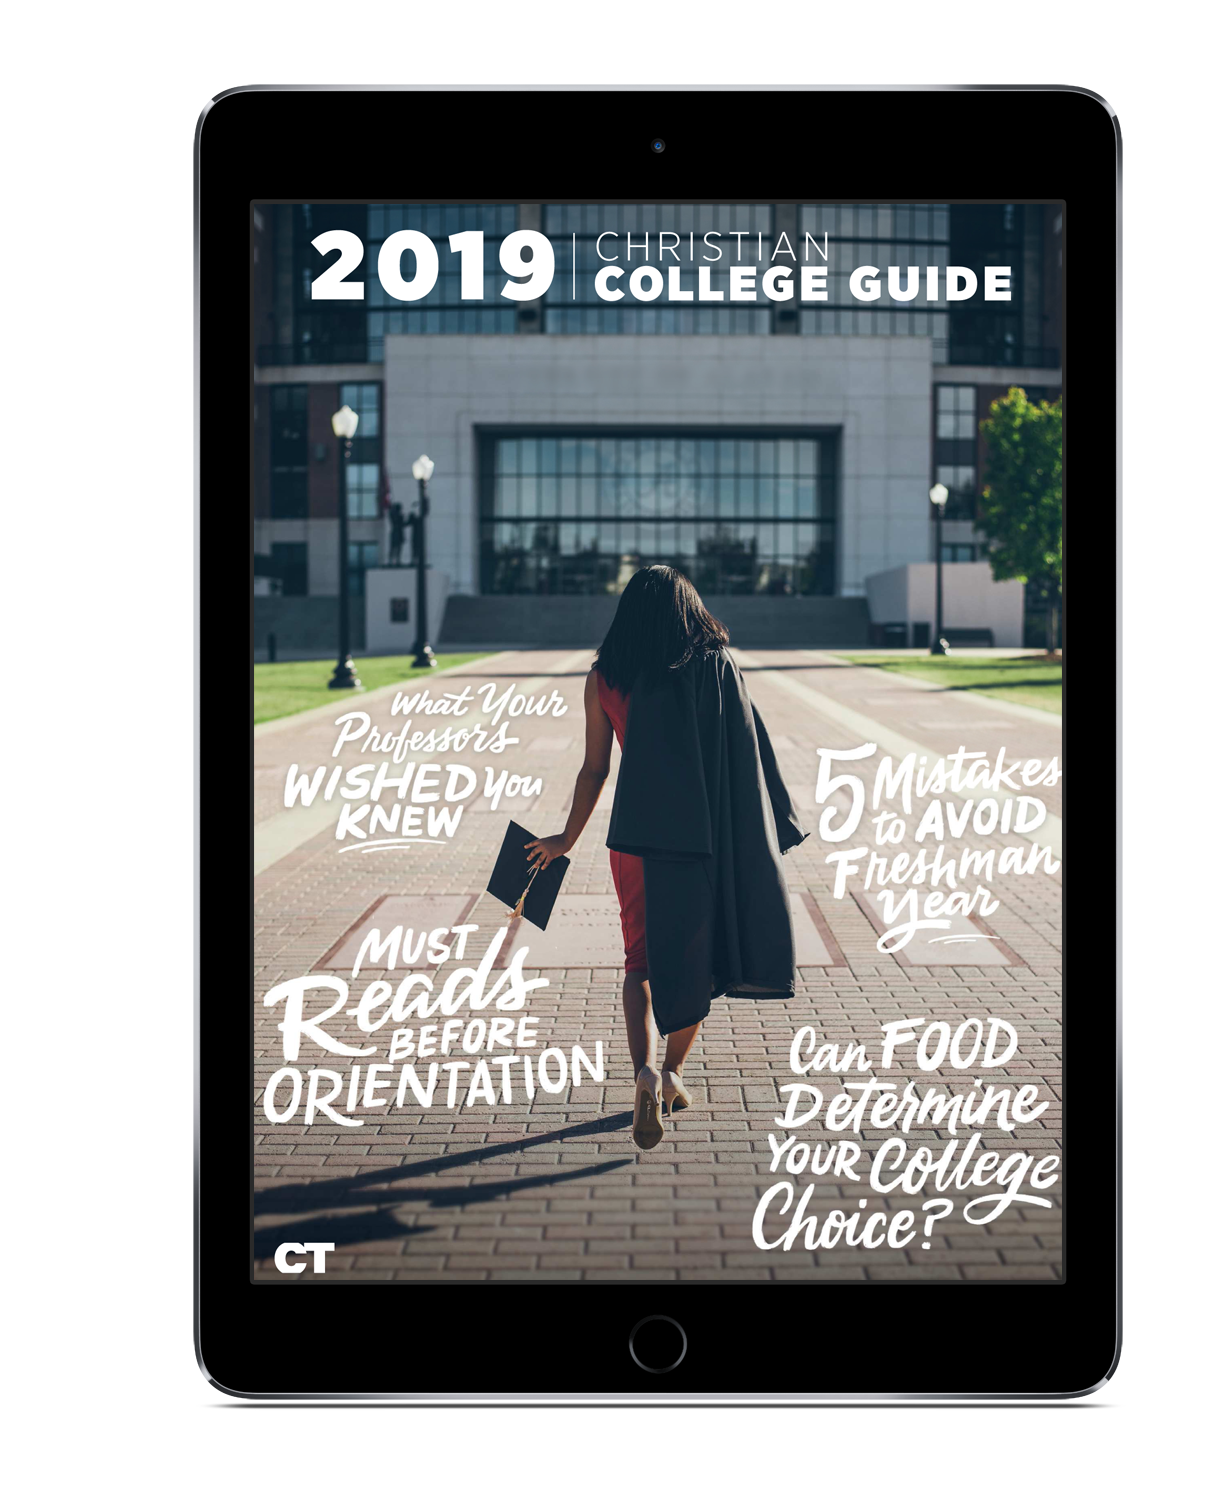 2019 Christian College Guide